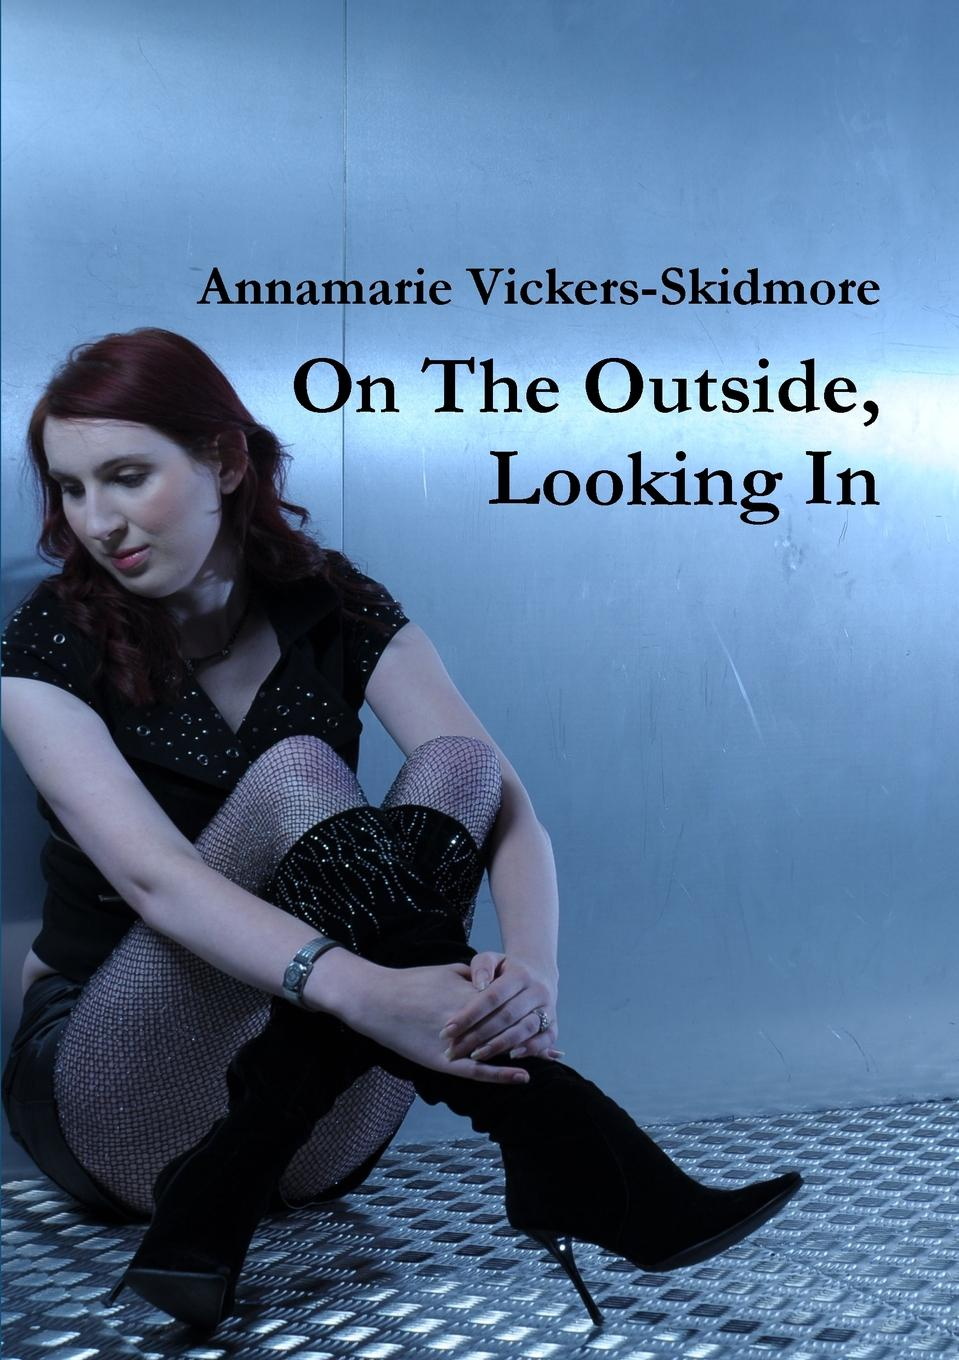 Annamarie Vickers-Skidmore On The Outside, Looking In